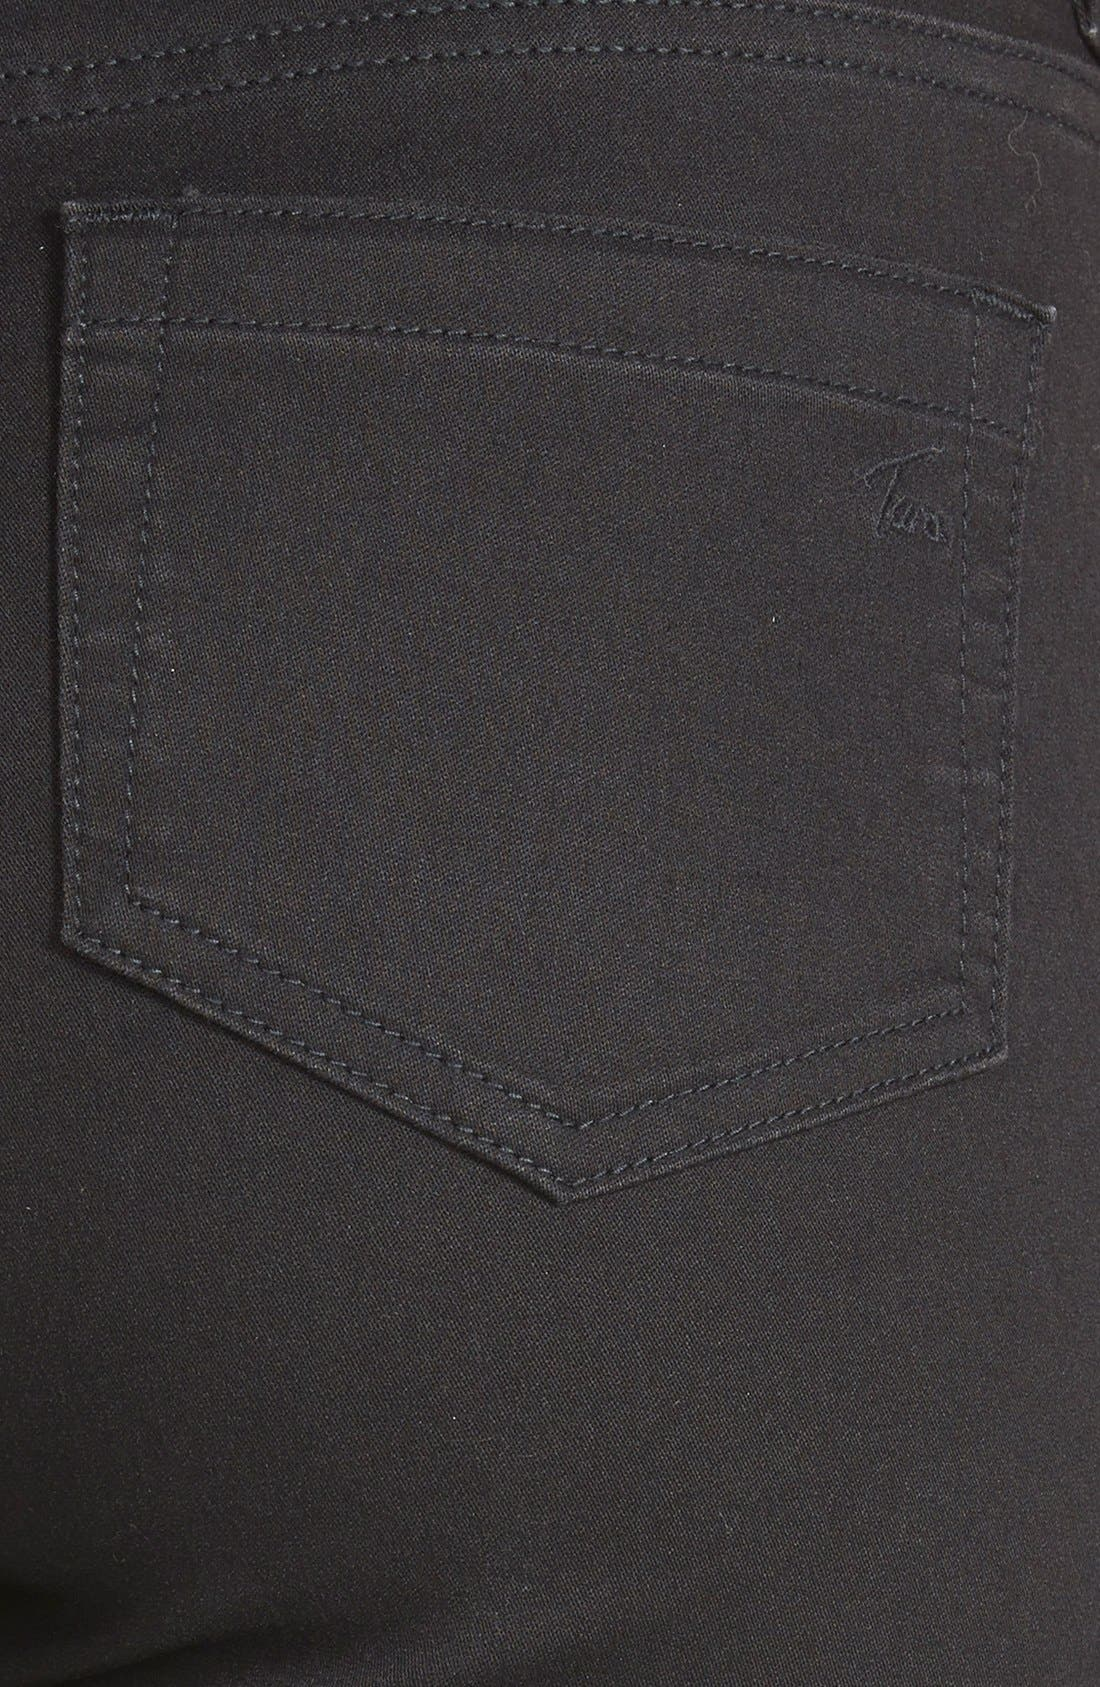 Stretch Skinny Jeans,                             Alternate thumbnail 3, color,                             001